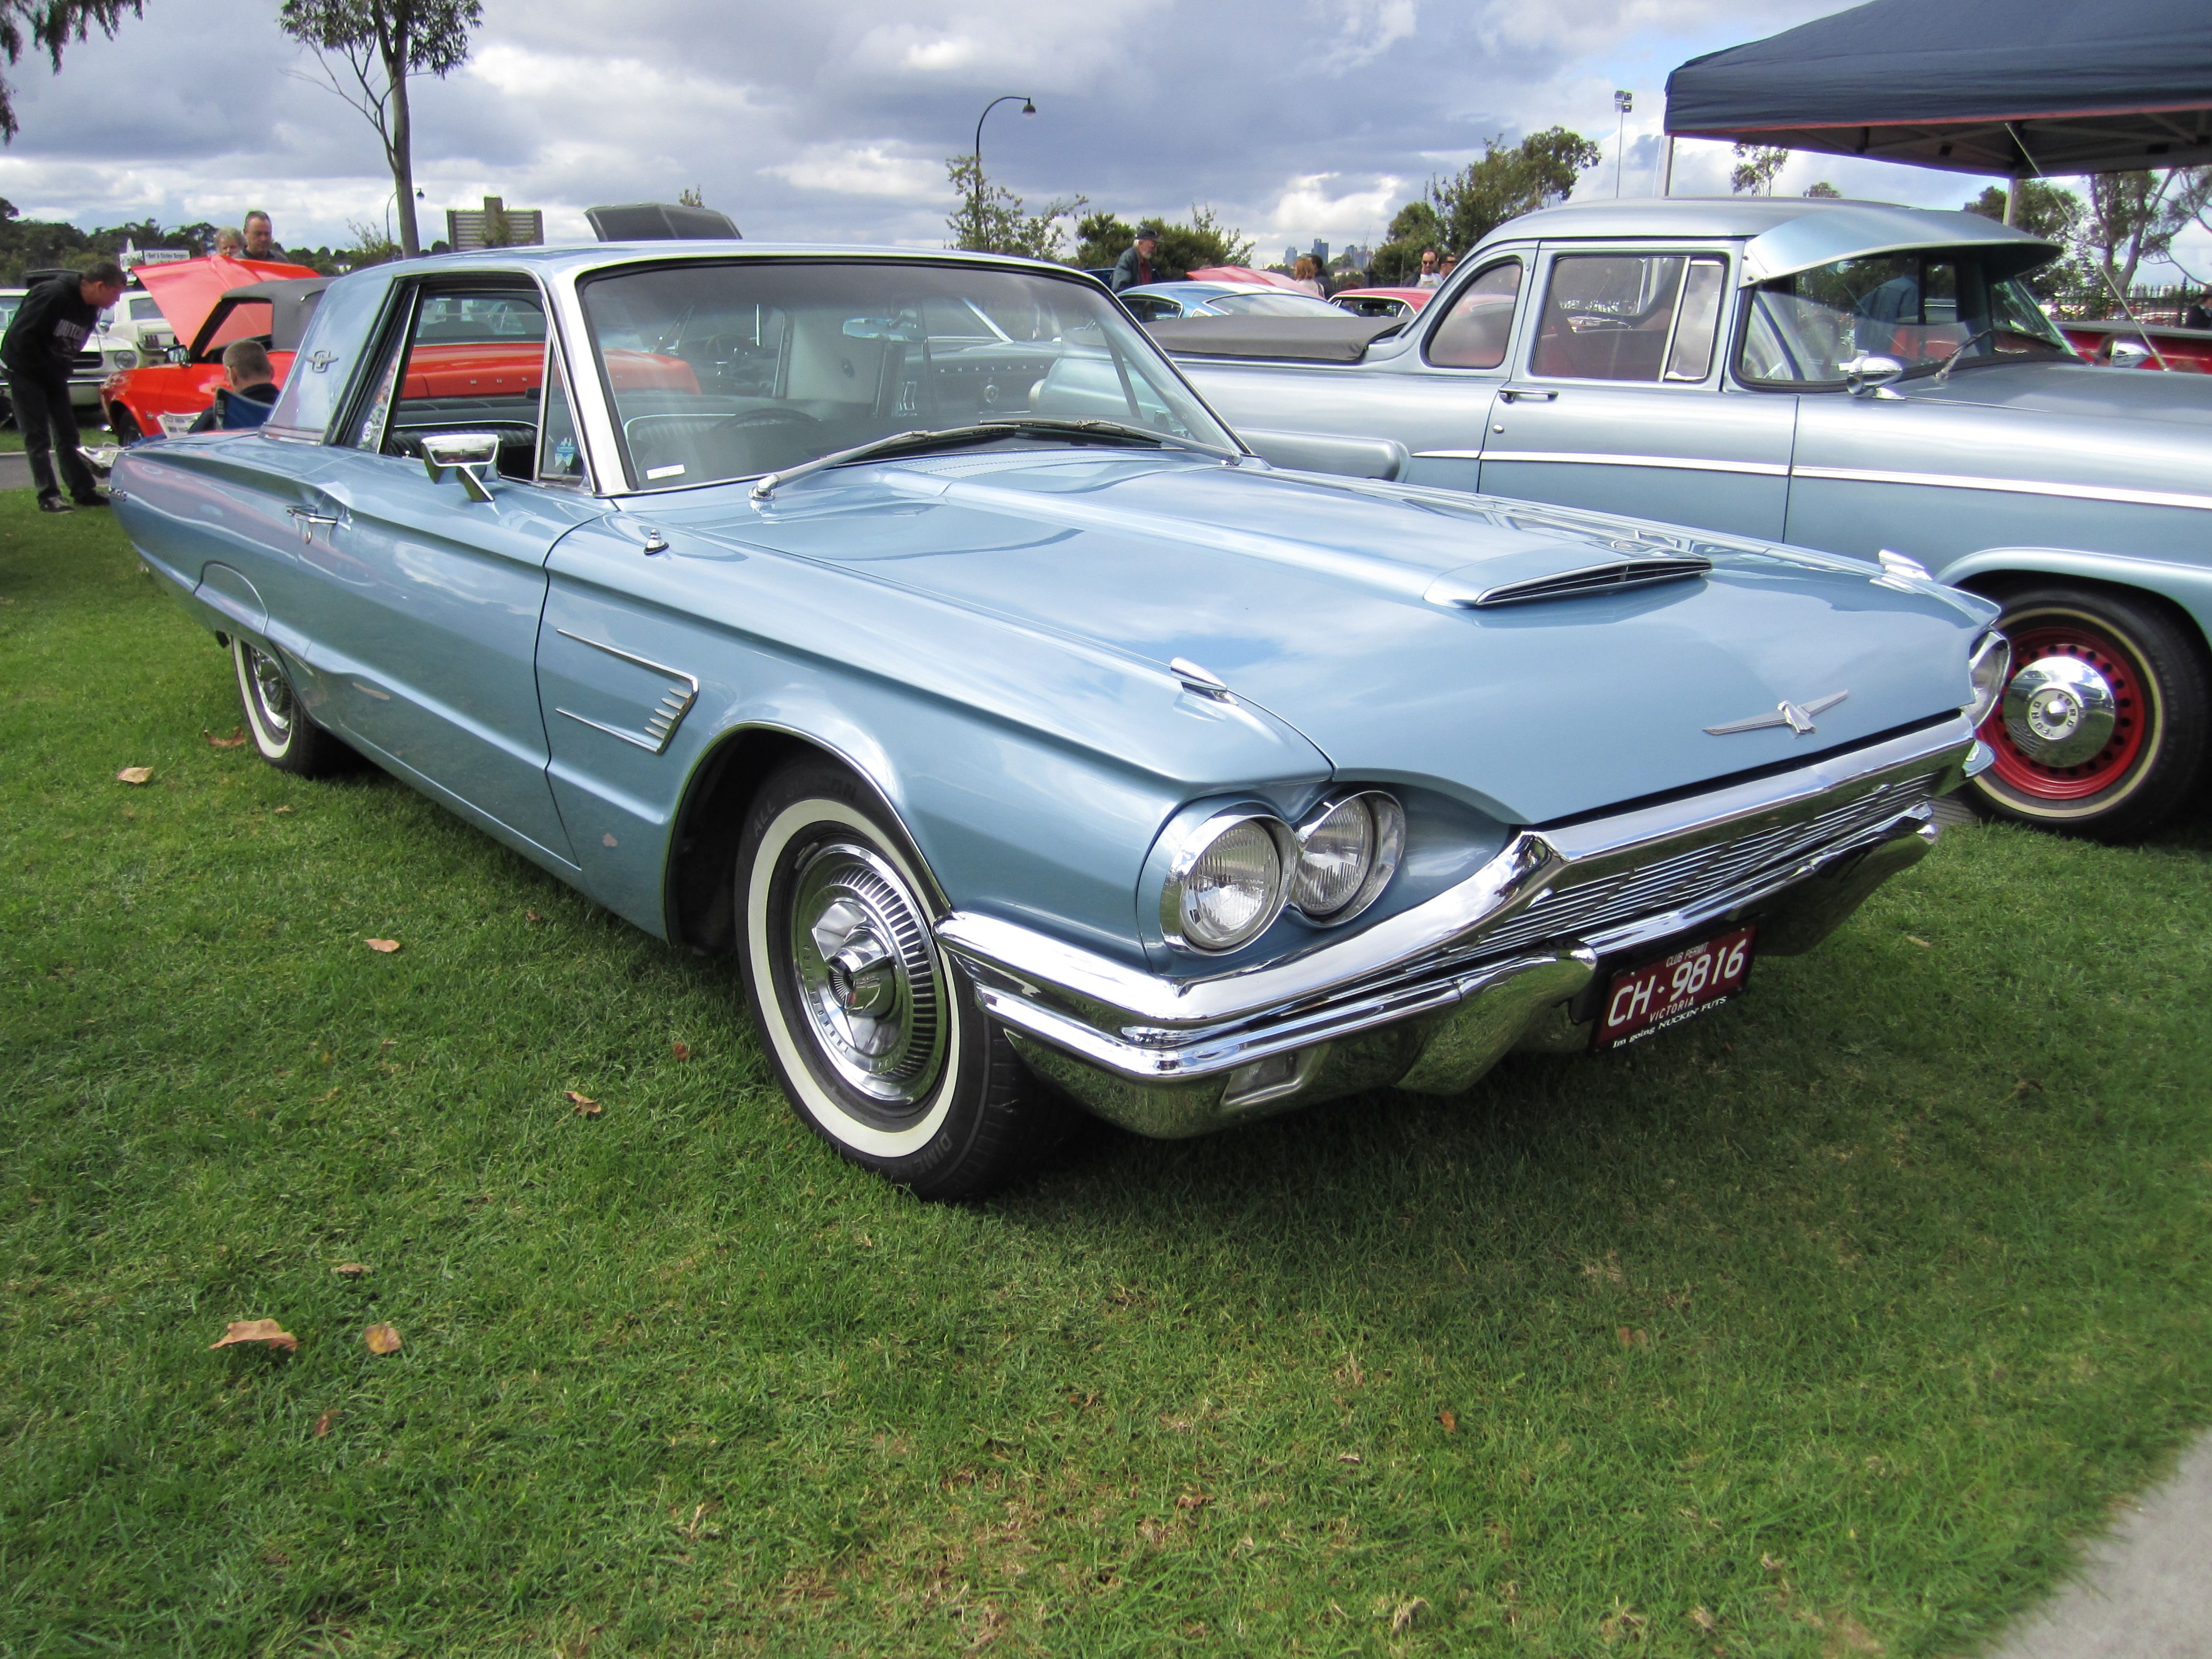 1965 Thunderbird hardtop. Have seen a couple of these on Craigslist ...